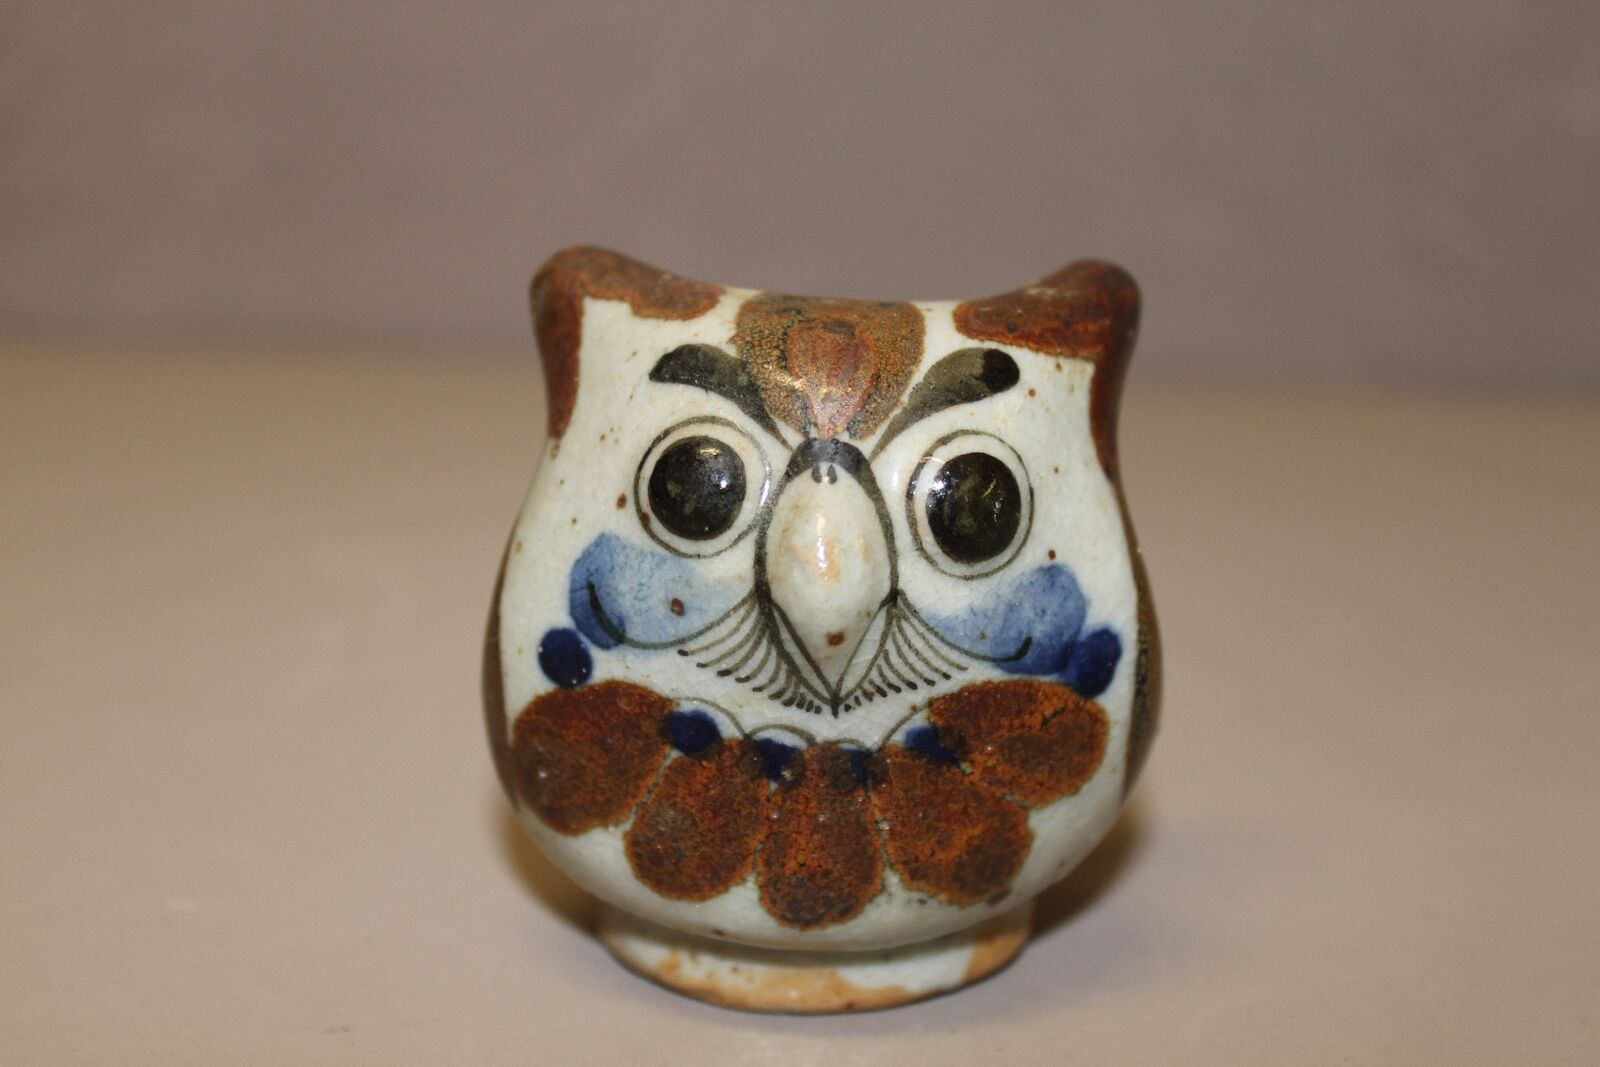 Hand Painted Owl Figurine Decorative,  Brown and Blue in Color (New)